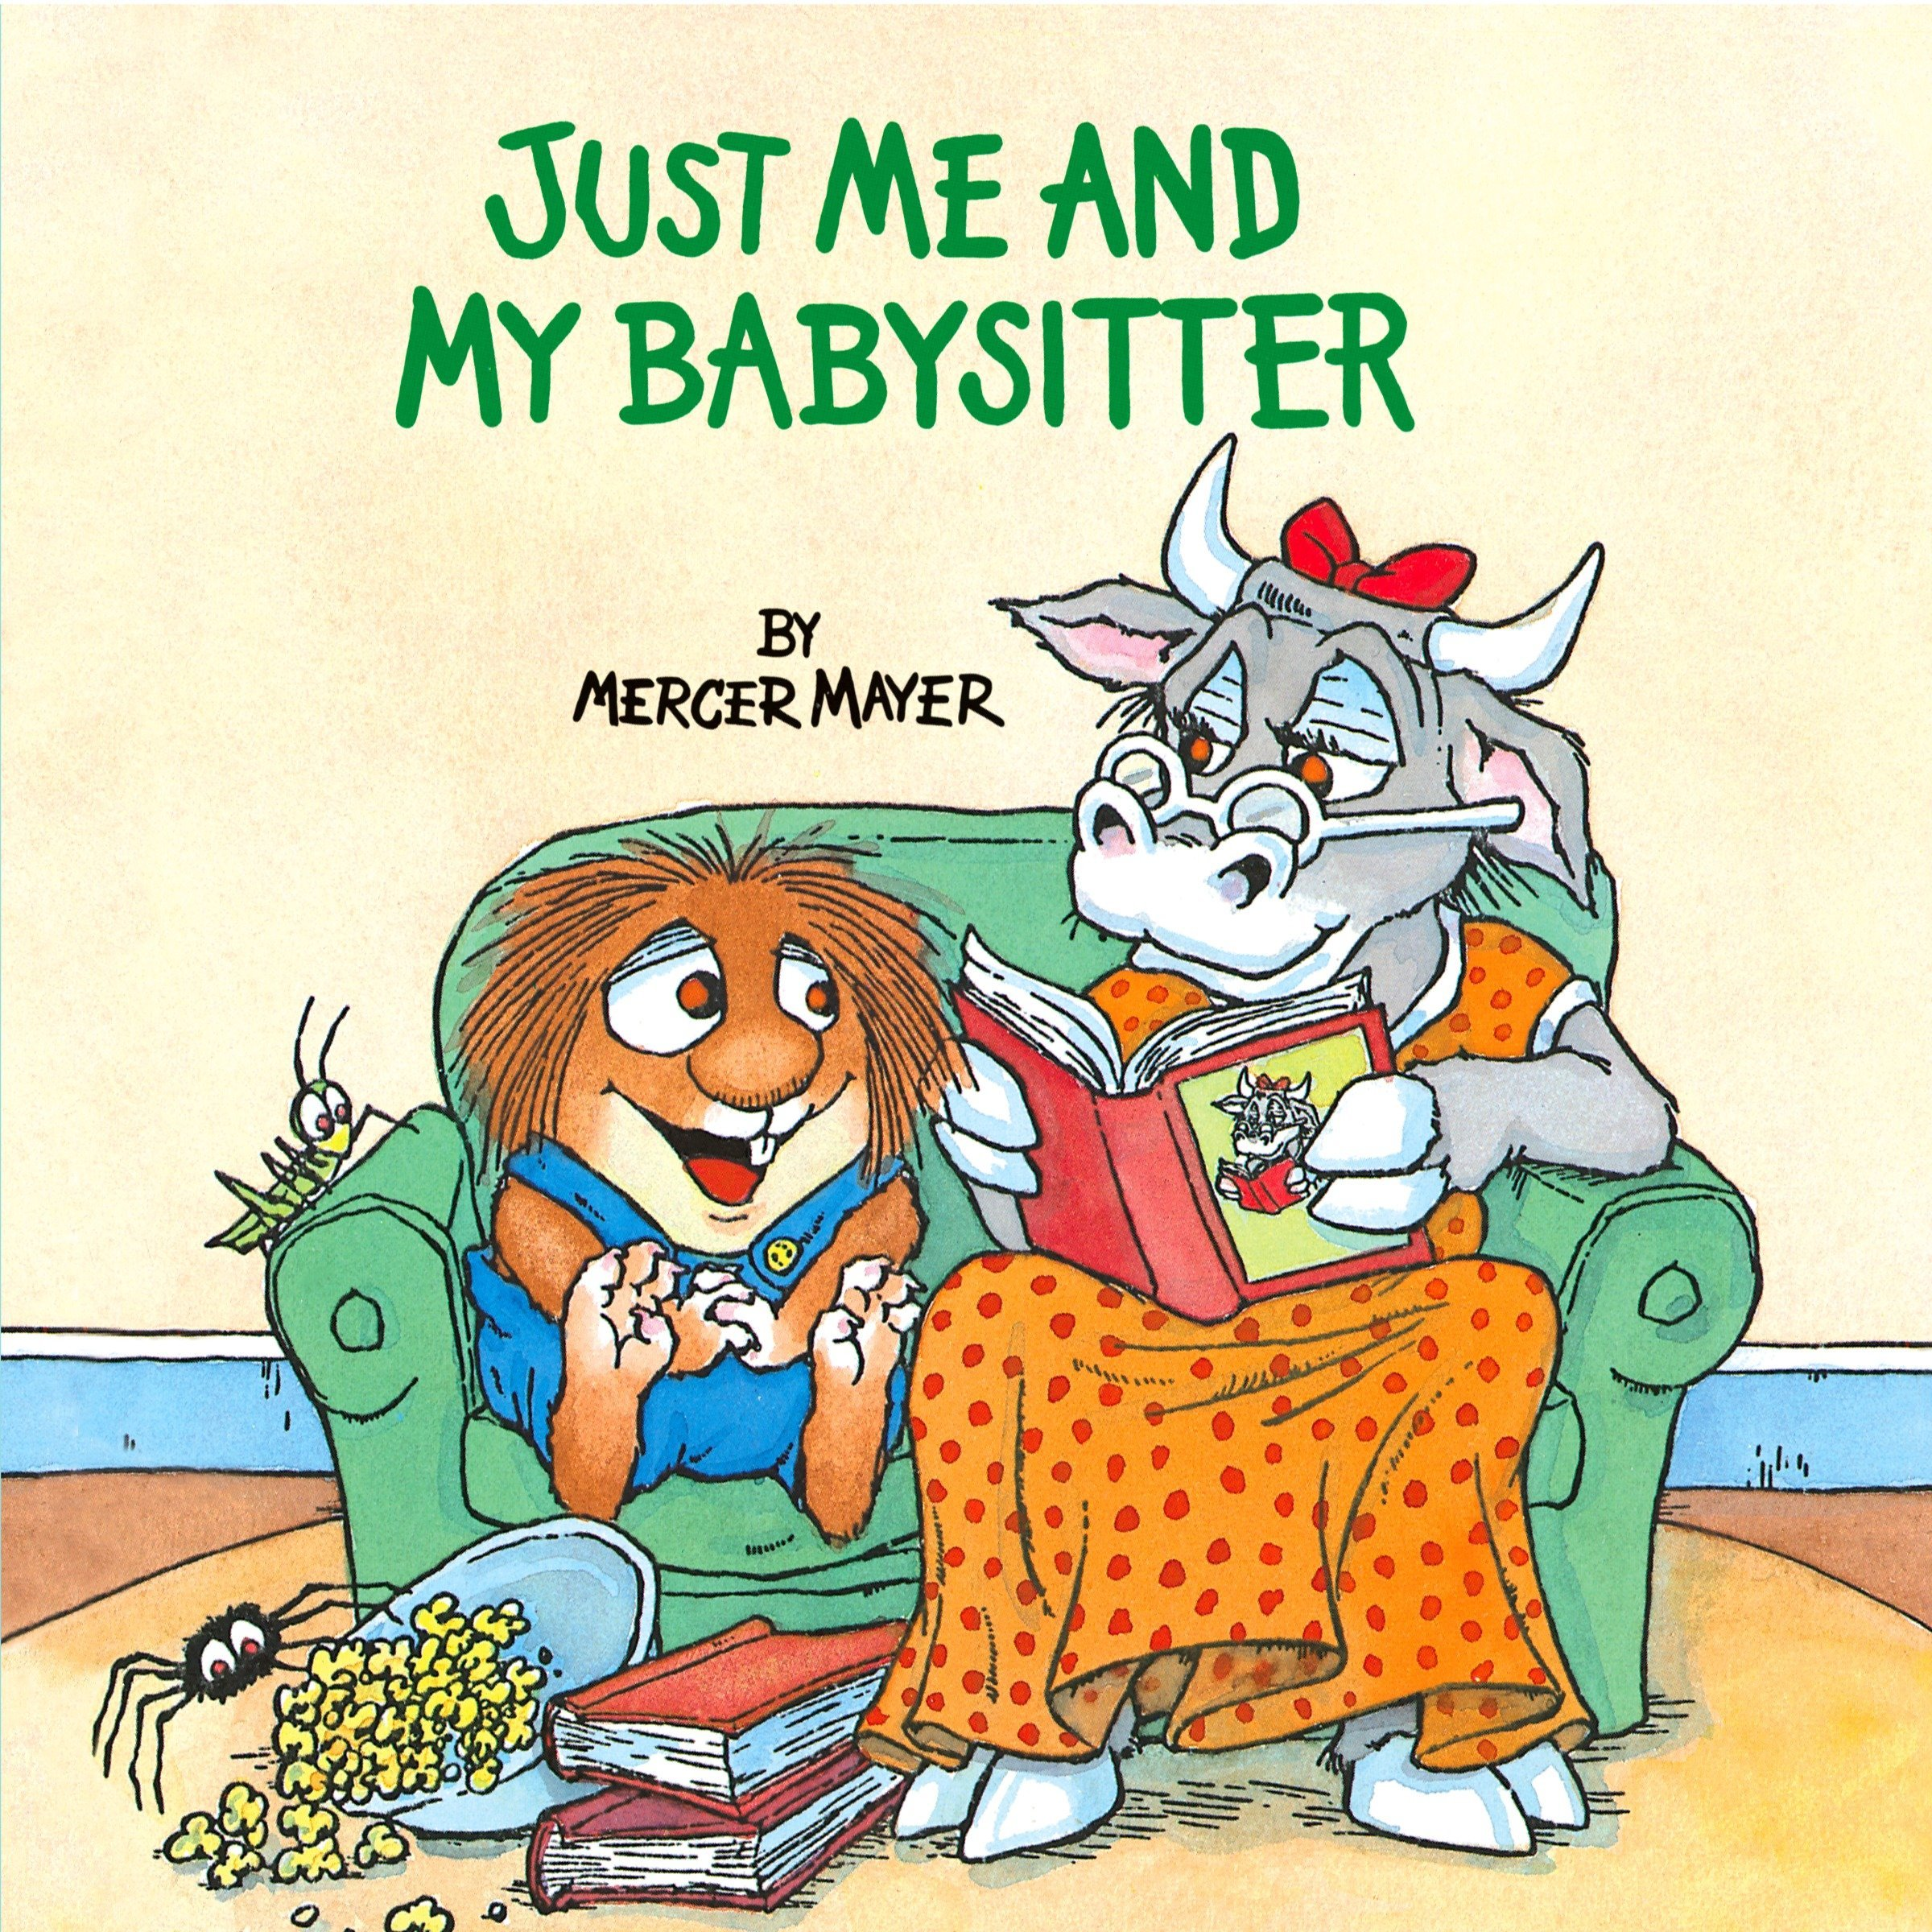 just me and my babysitter mercer mayer 0033500819452 amazon com